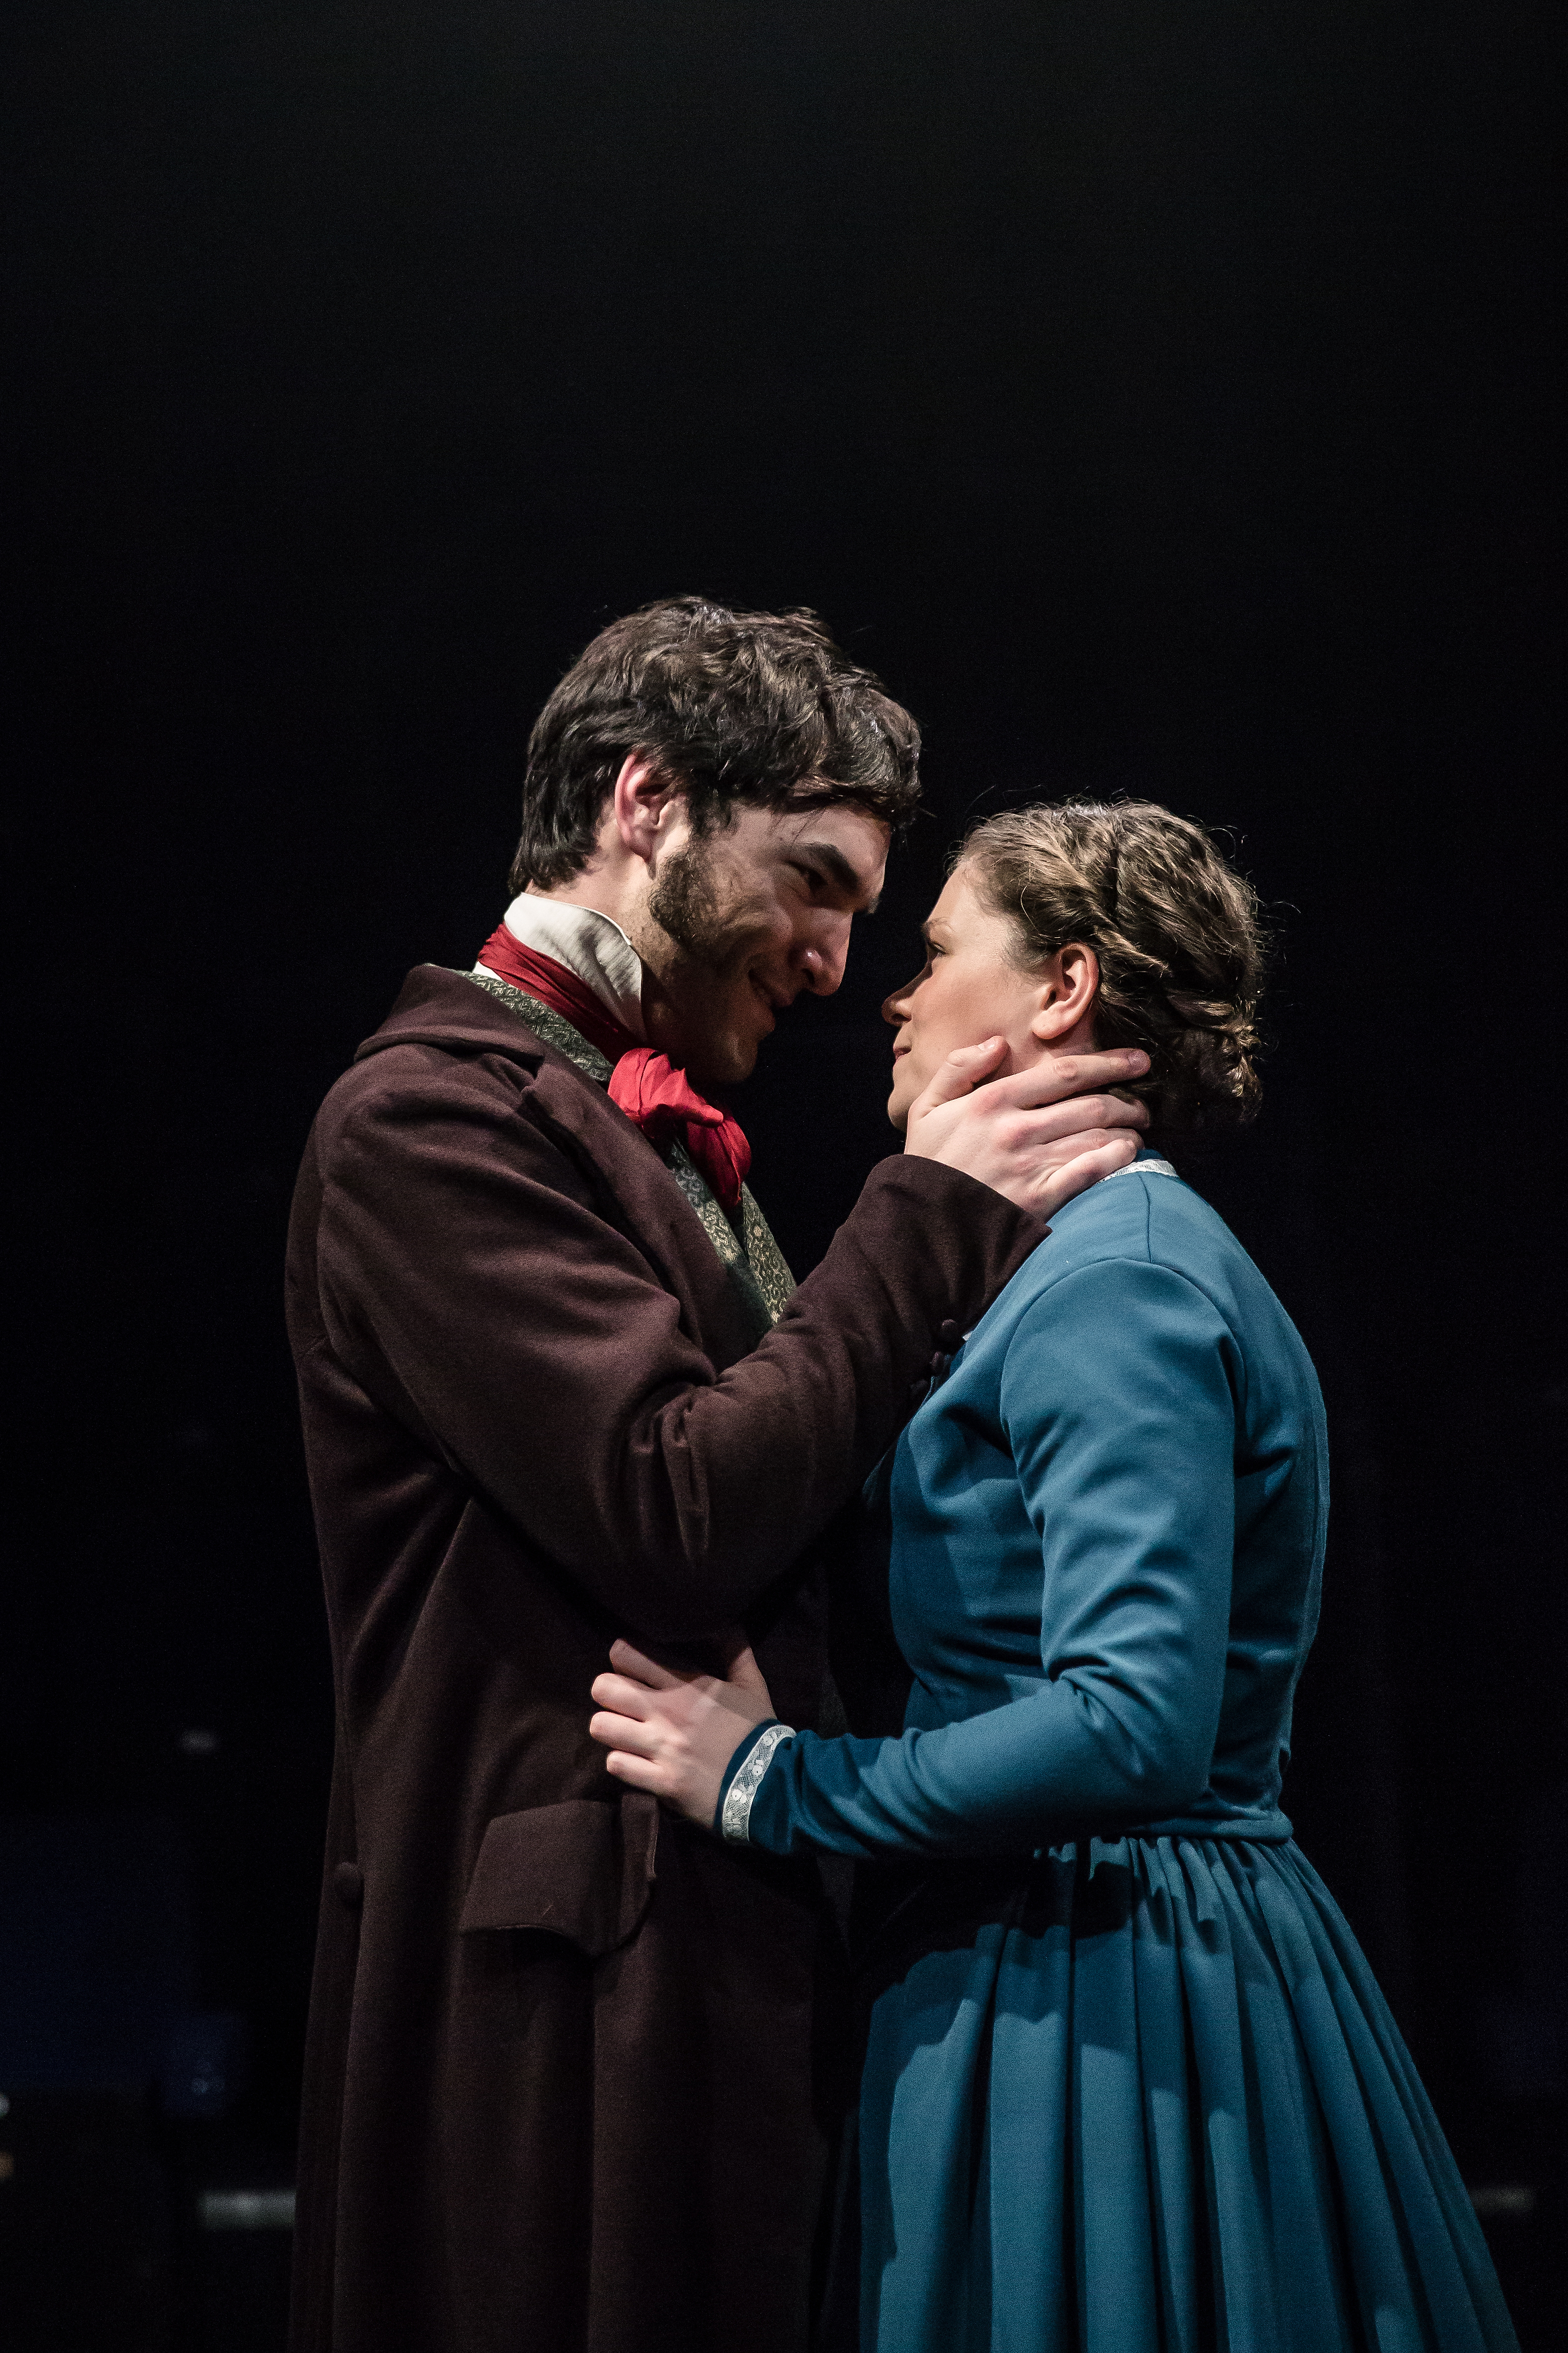 Michael Peavoy as Mr Rochester and Jessica Baglow as Jane Eyre. Photo: The Other Richard